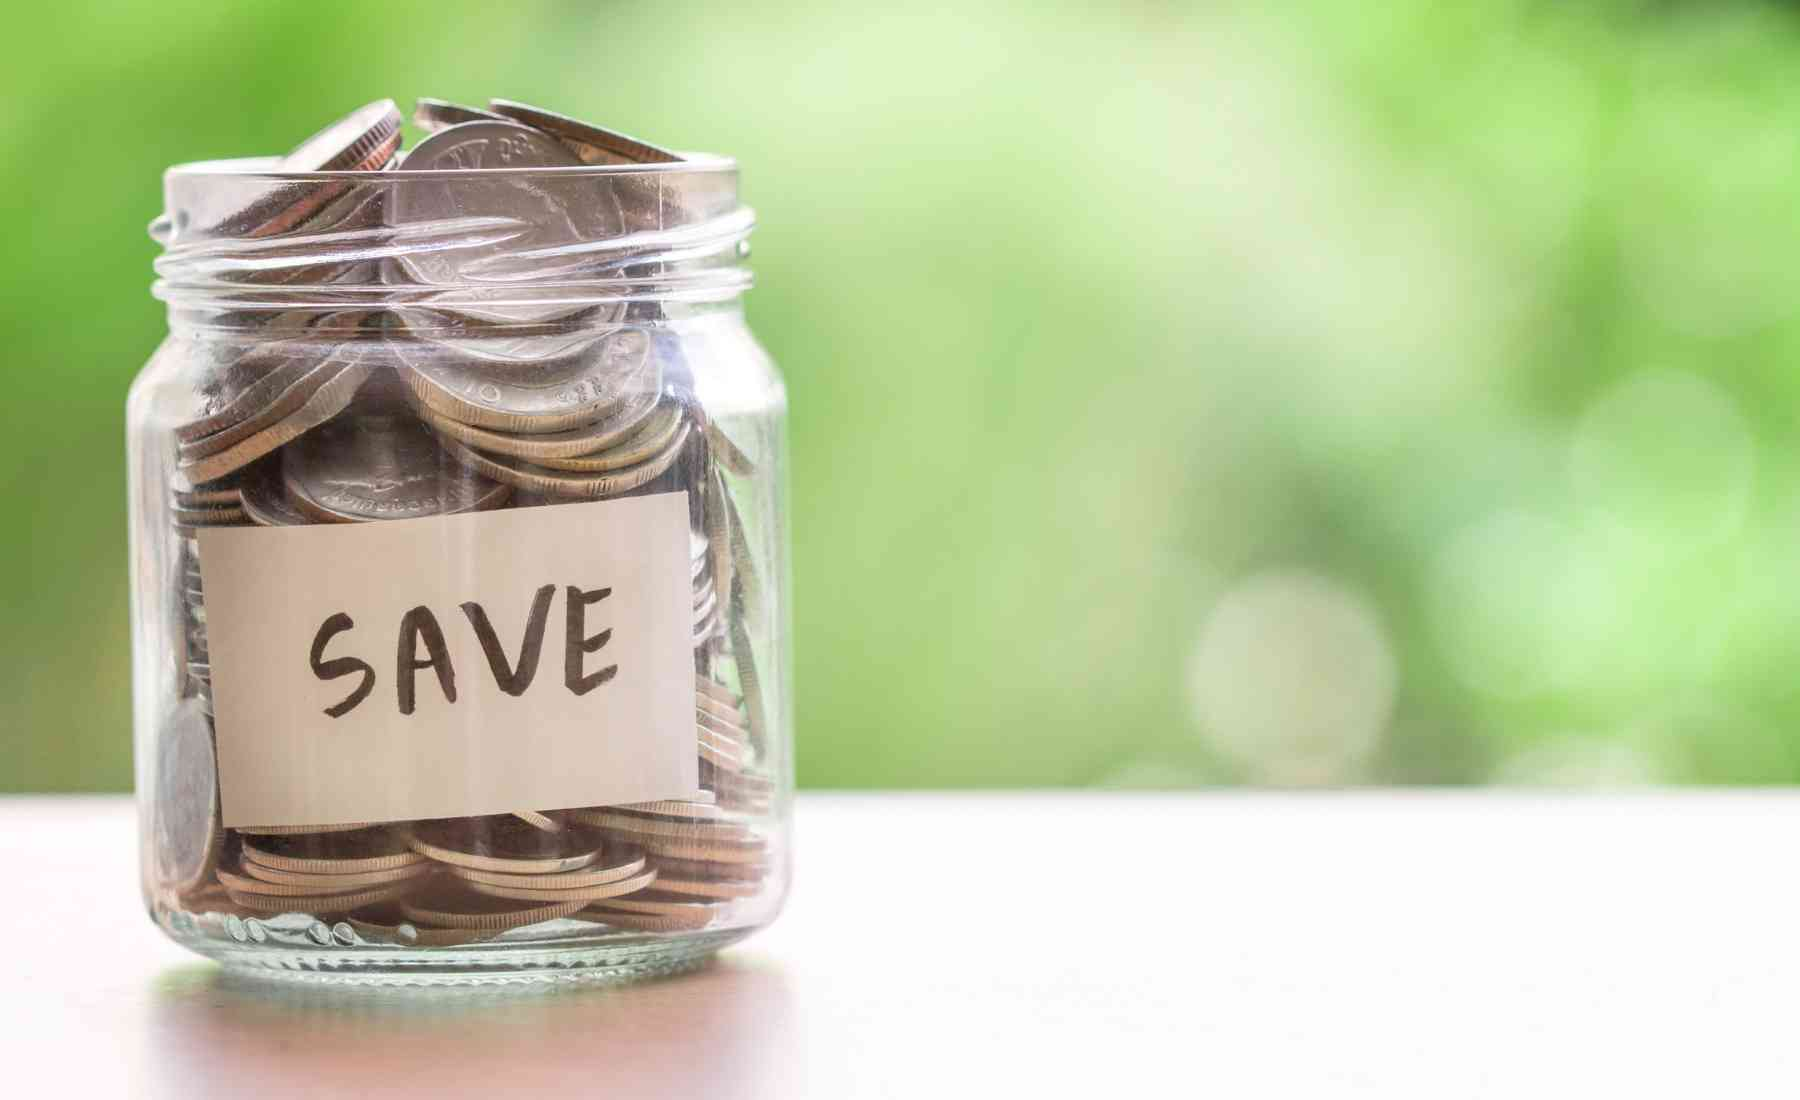 Independently Wealthy - Save Money